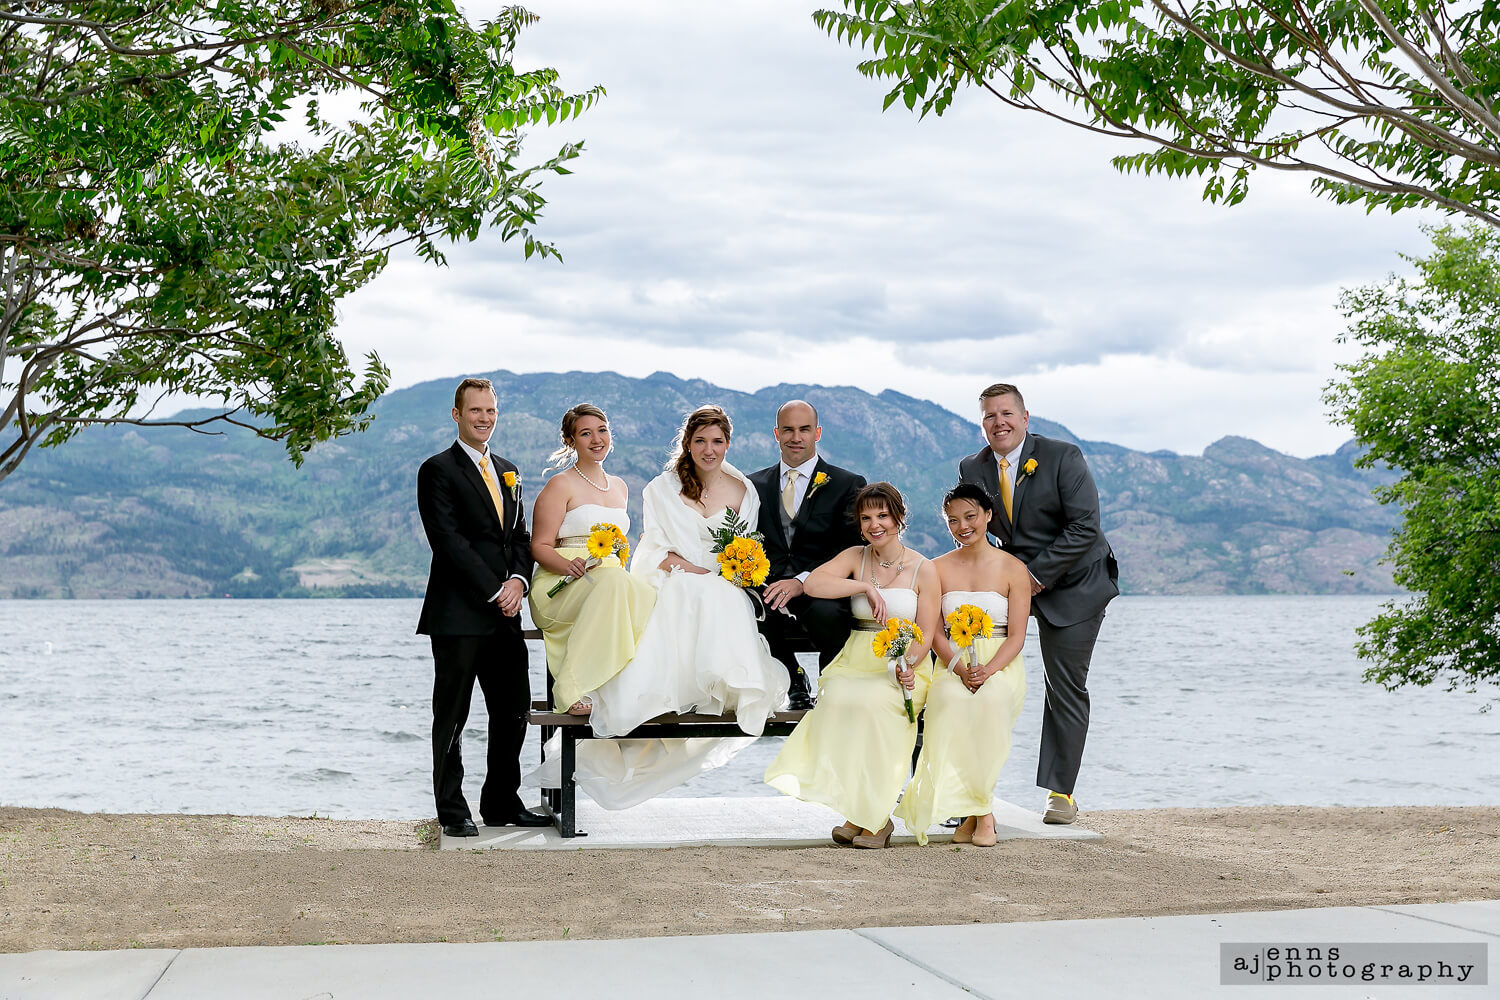 The couple sitting on a picnic table over looking Kelownas lake with the mountains in the background.